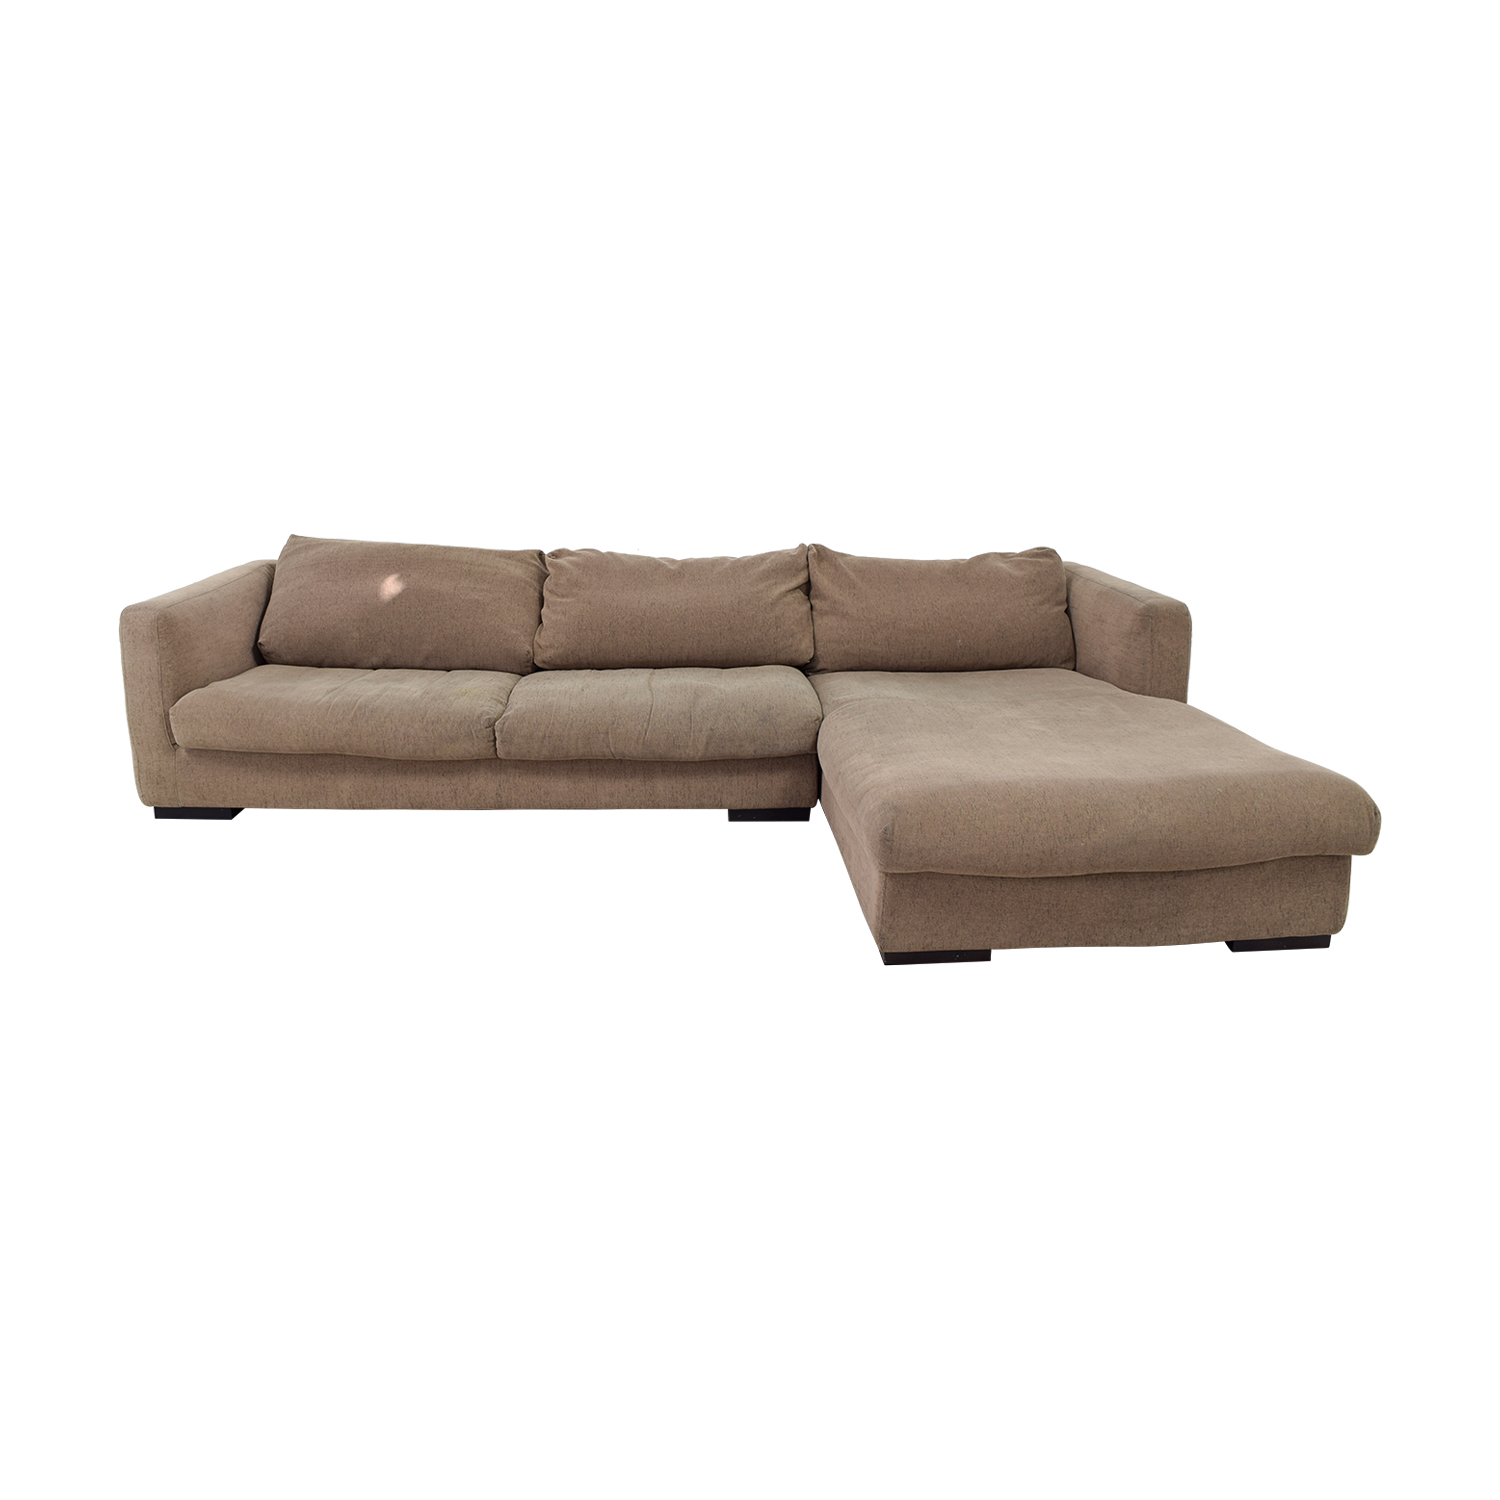 buy Plummers Furniture Tan Down Feather Chaise Sectional Plummers Furniture